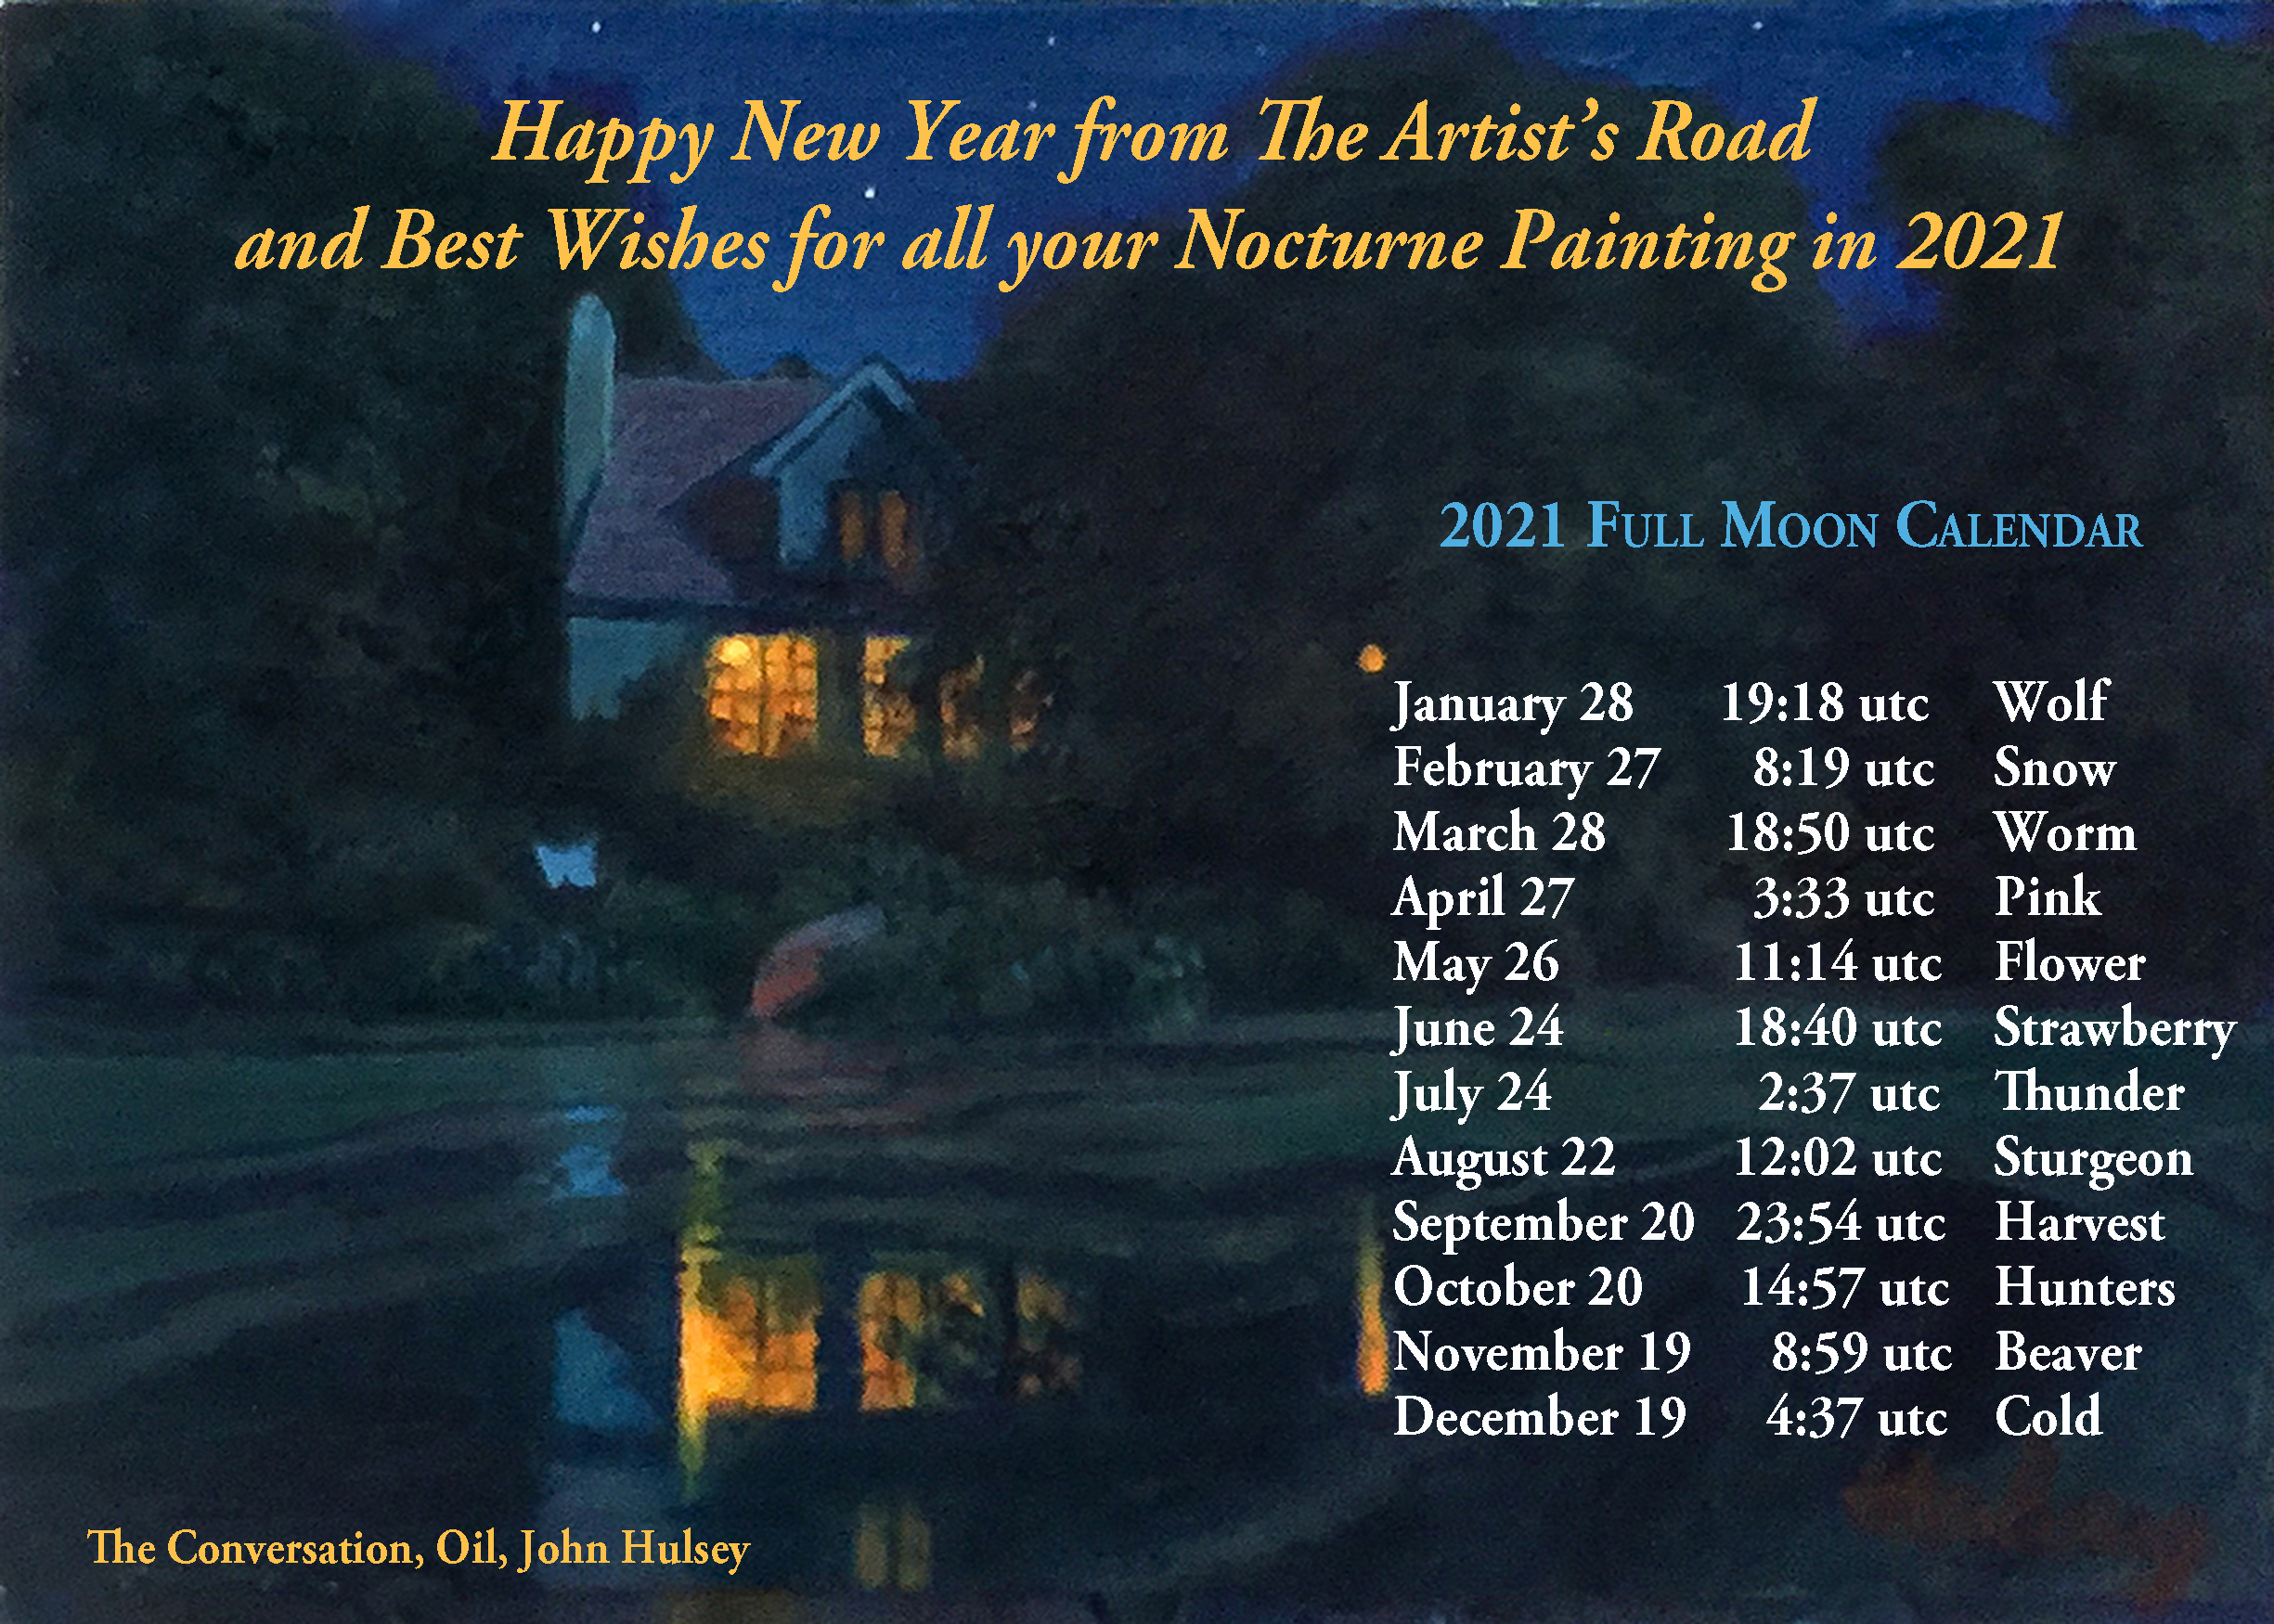 The Artist's Road 2021 New Year Nocturne Full Moon Calendar